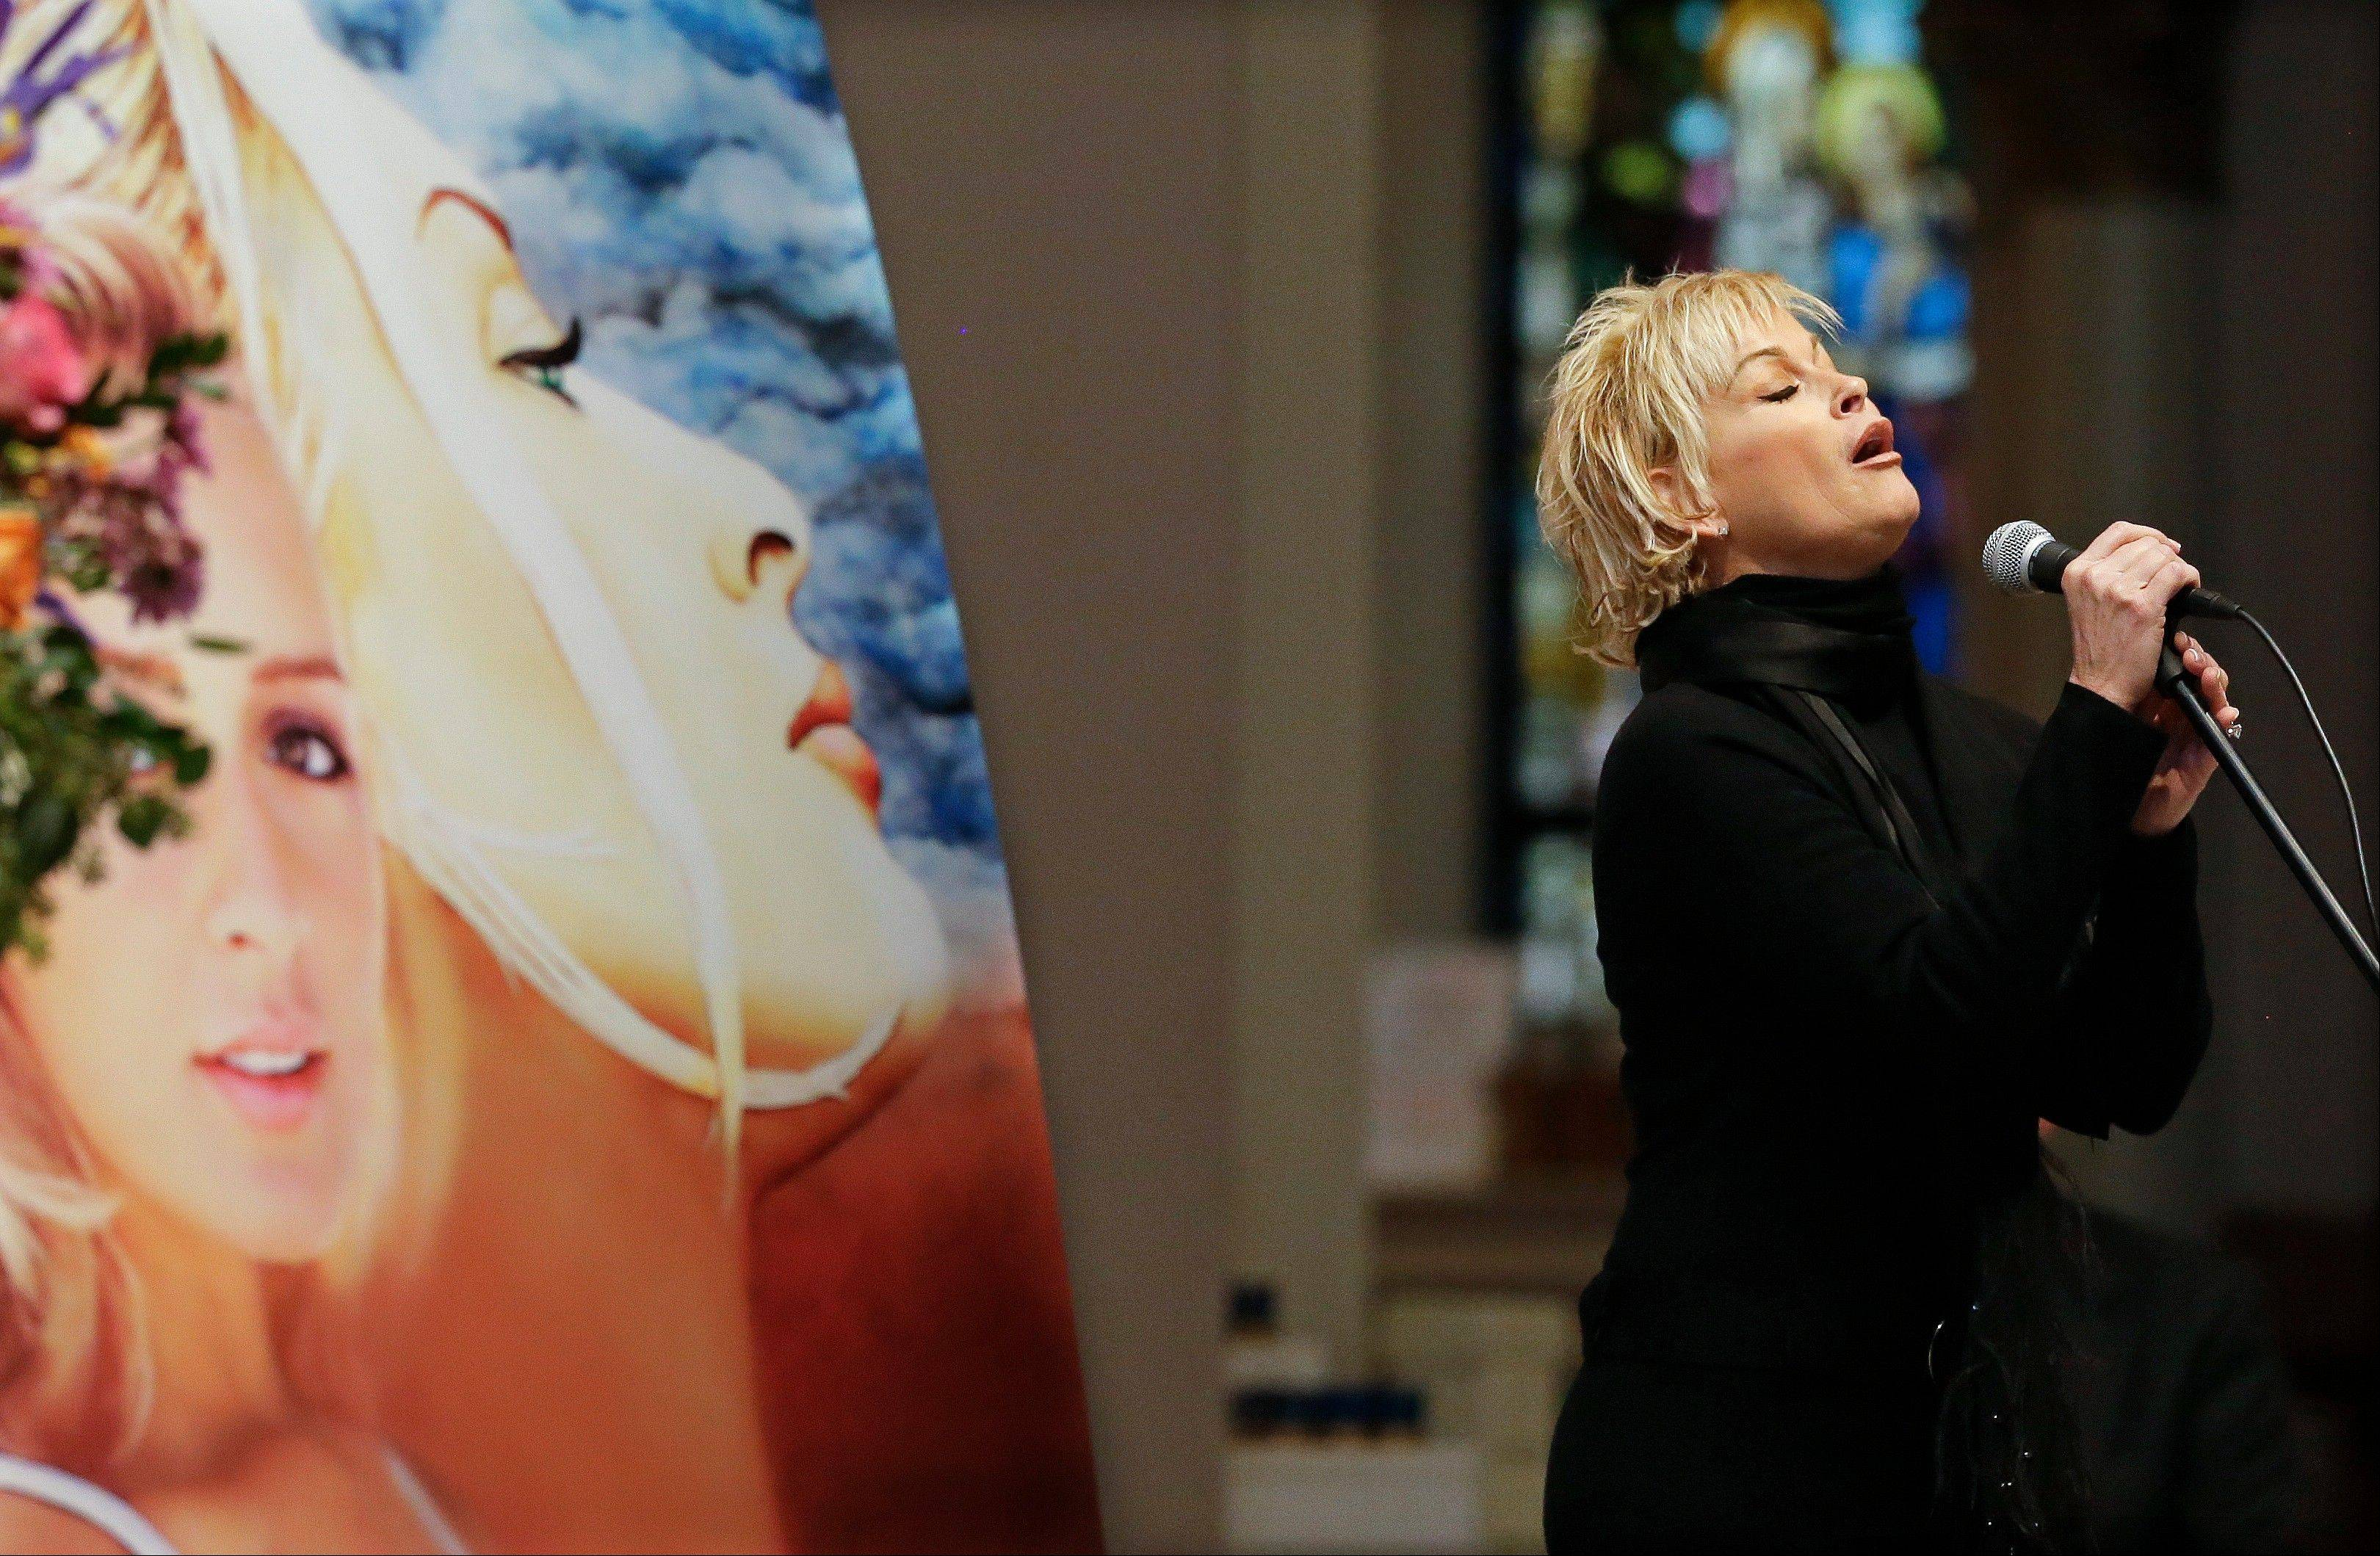 Lorrie Morgan sings �Ave Maria� during a memorial service for fellow country singer Mindy McCready on Wednesday in Nashville, Tenn. McCready committed suicide Feb. 17 in Heber Springs, Ark.